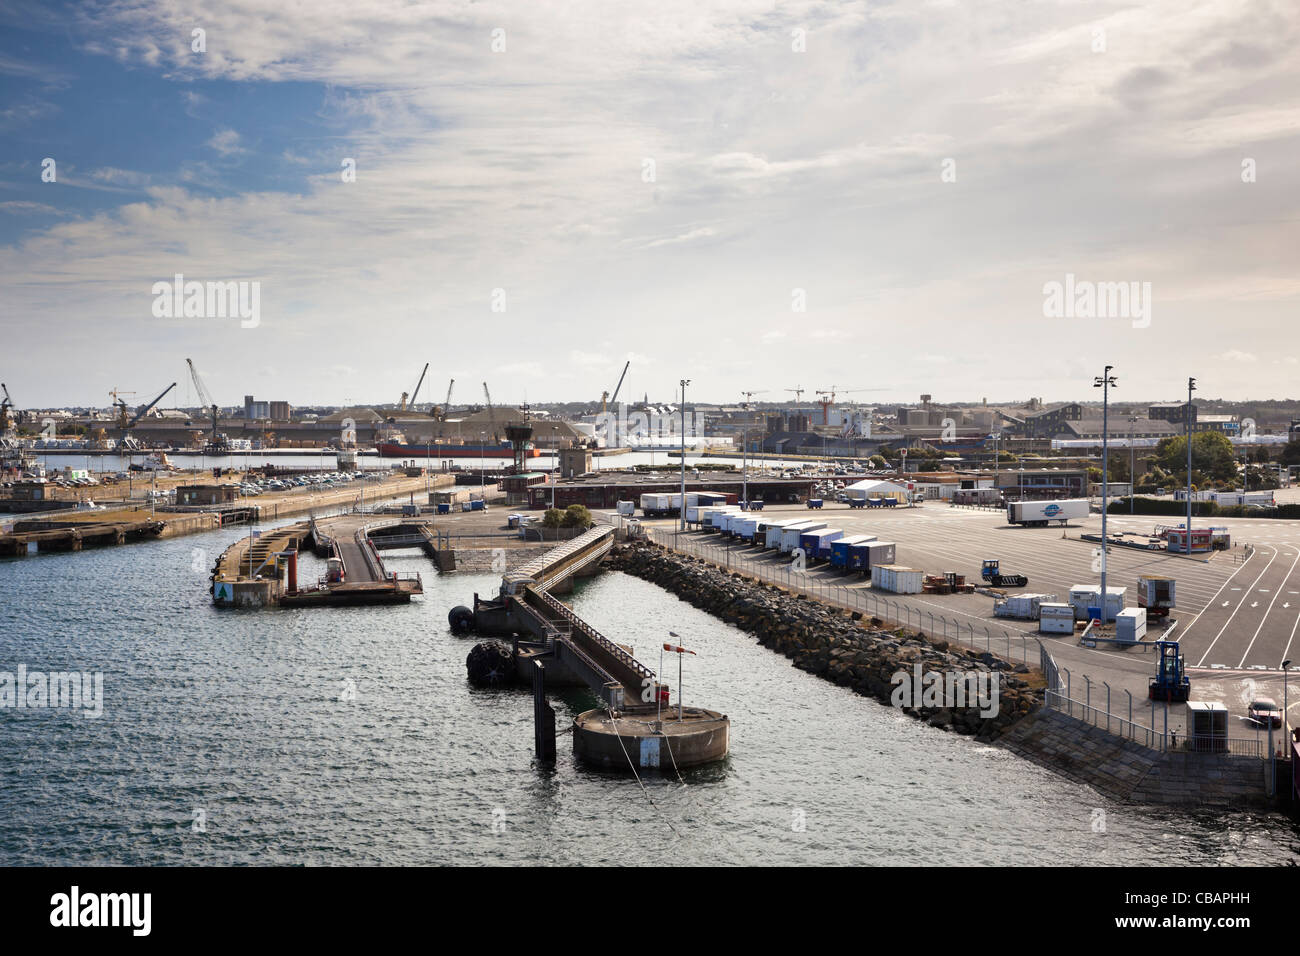 Docks at the port of St Malo, Brittany, France - Stock Image